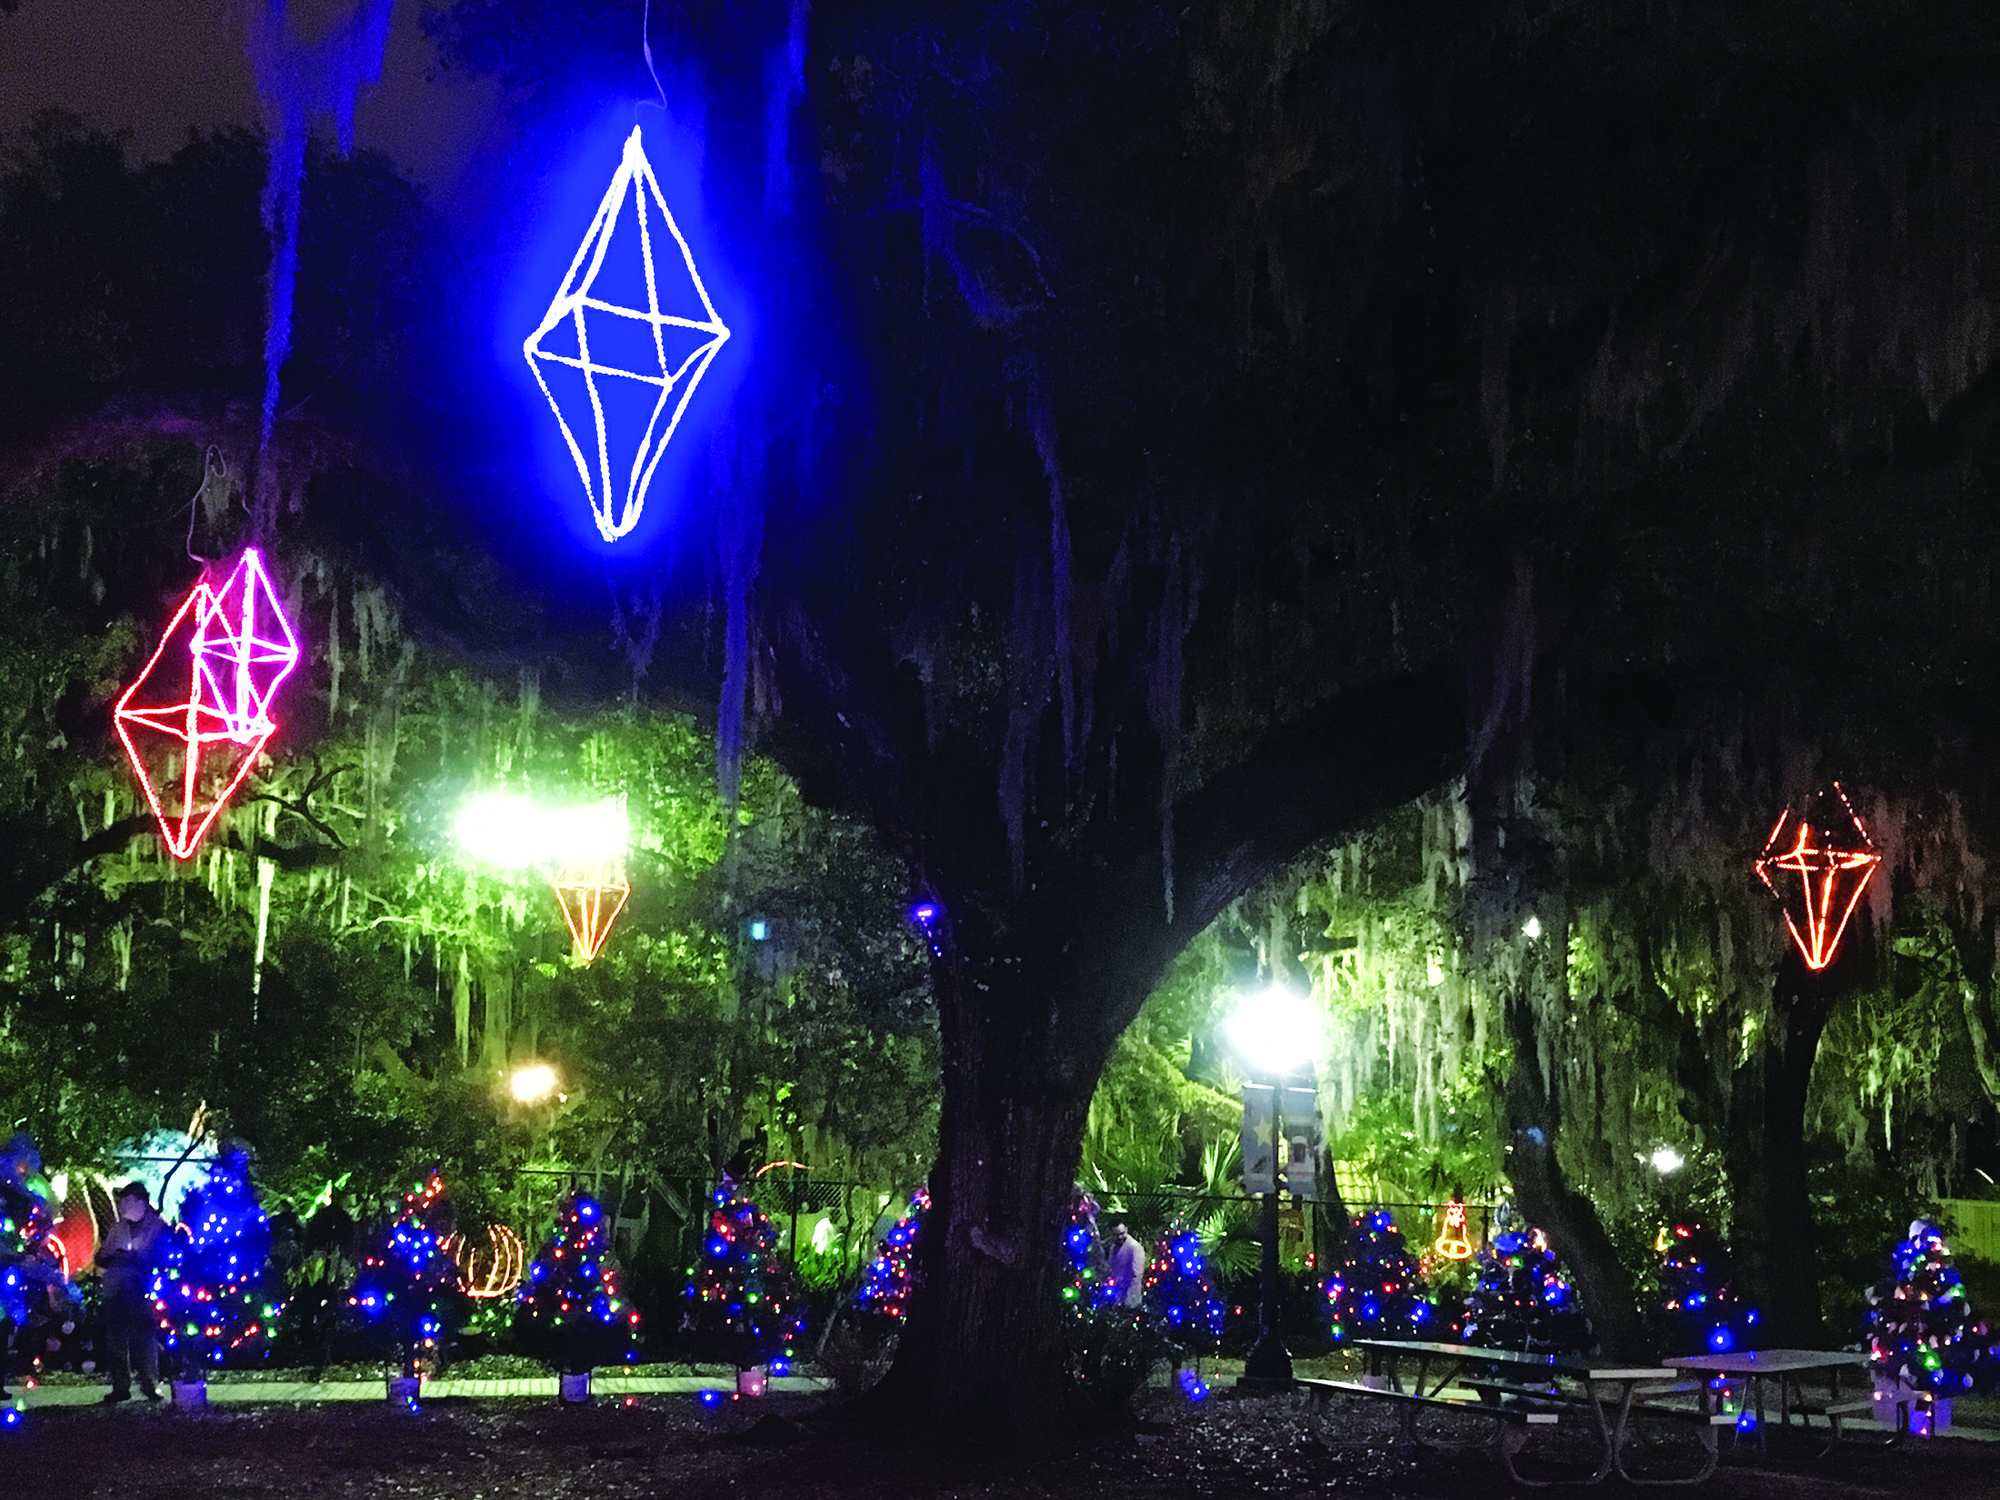 Celebration in the Oaks lights up City Park